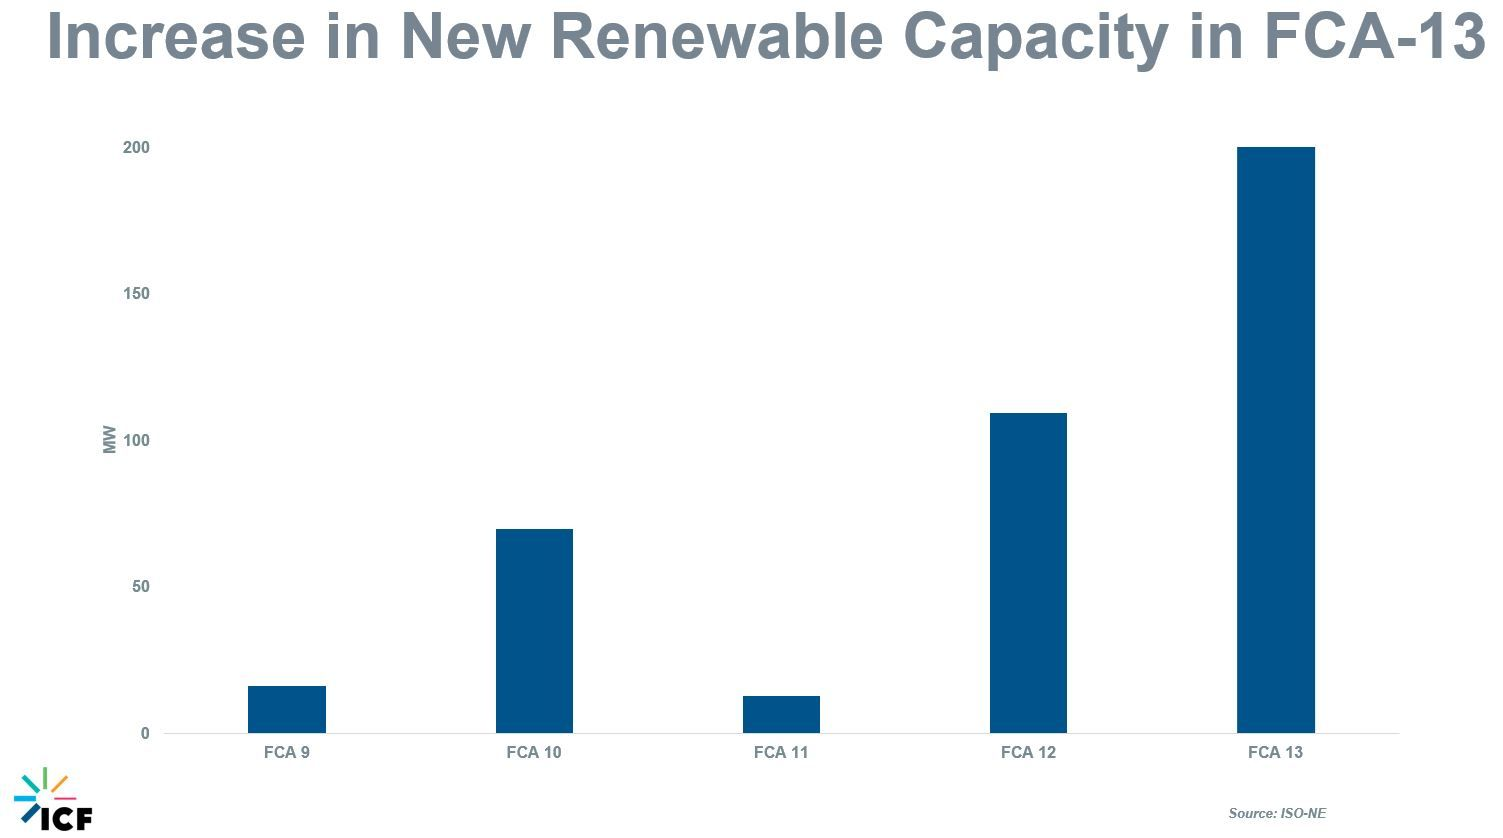 Figure 5 Increases in Renewable Energy Capacity in FCA 13 in Asana